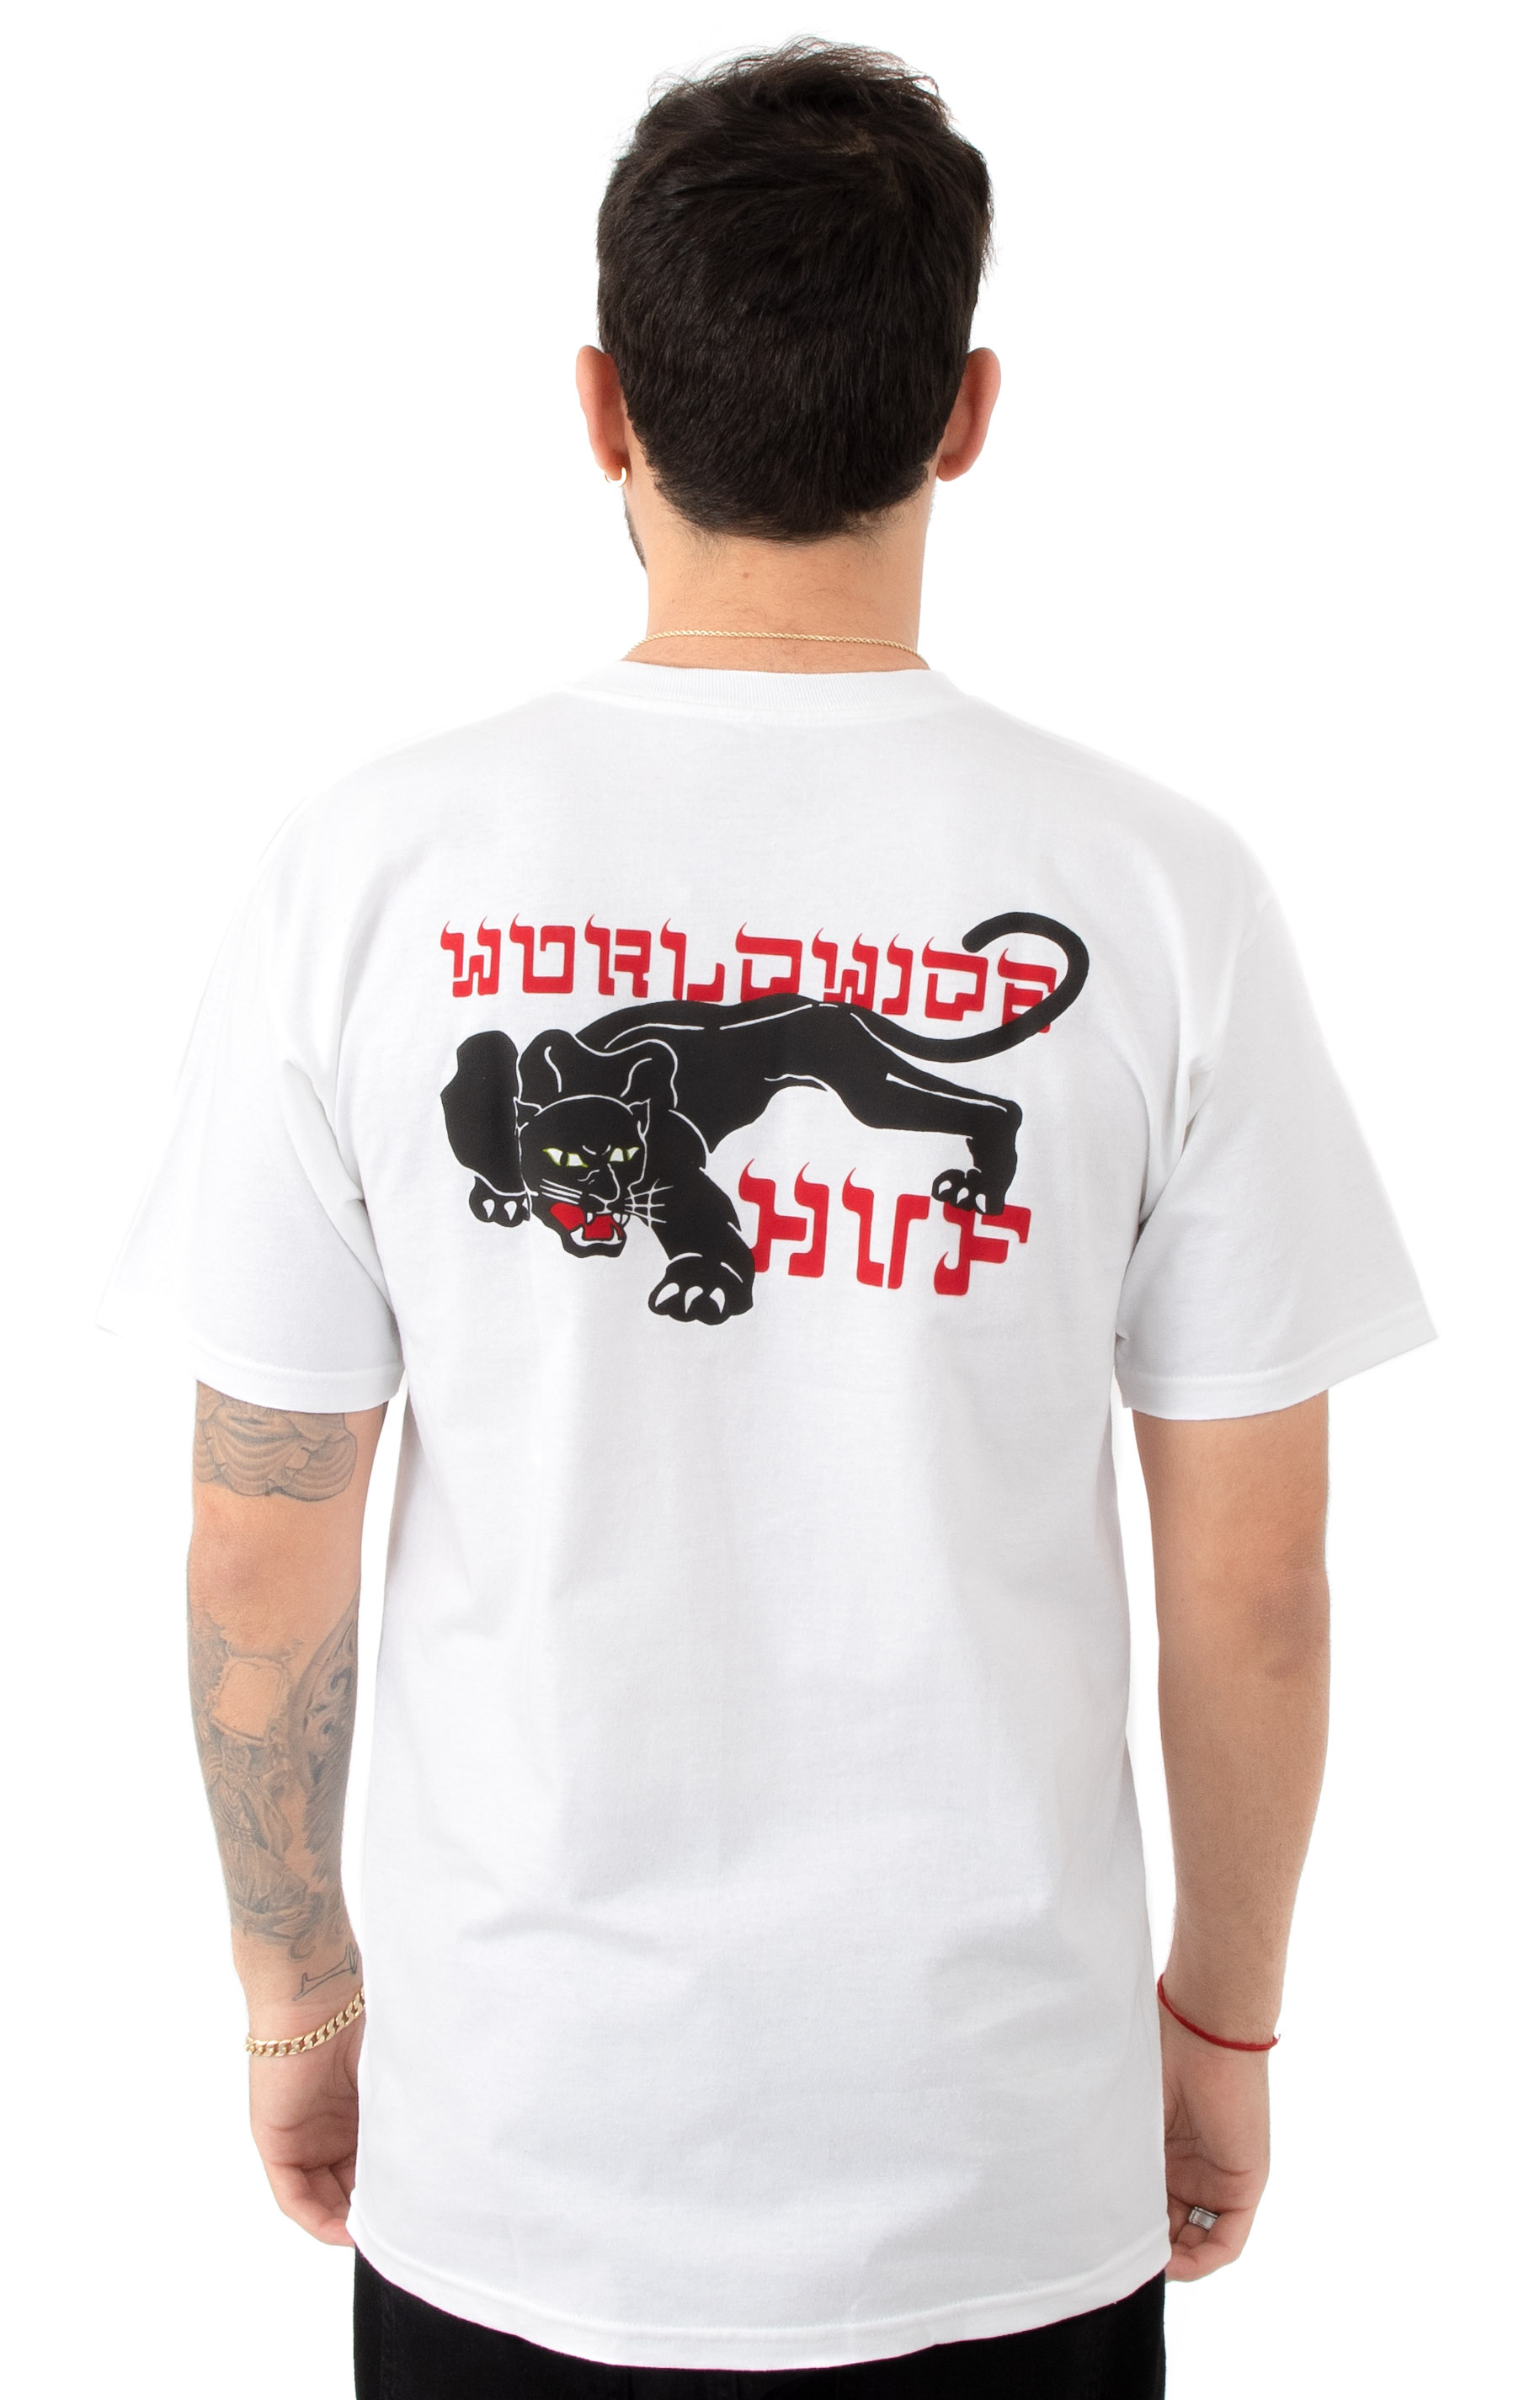 Burmese T-Shirt - White